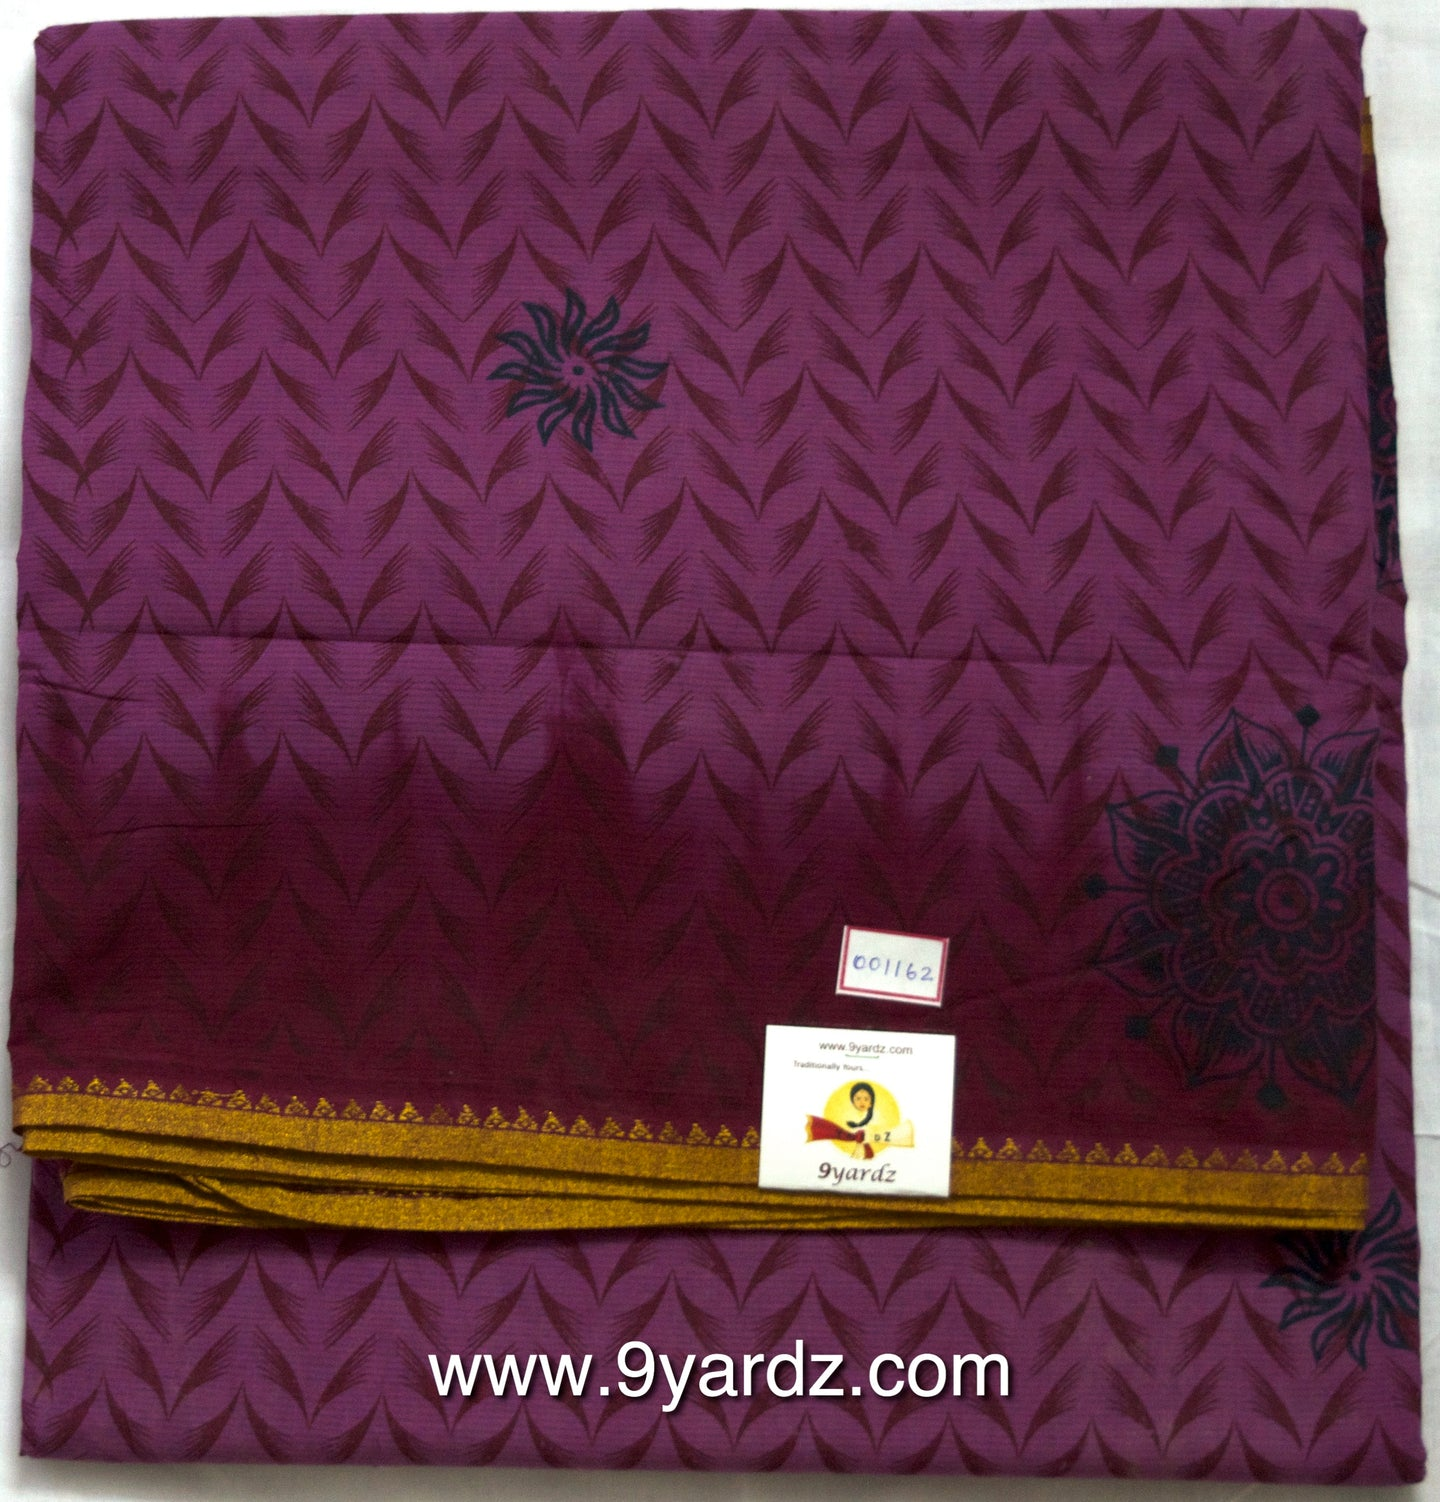 Fancy print - Sungudi 9 yards